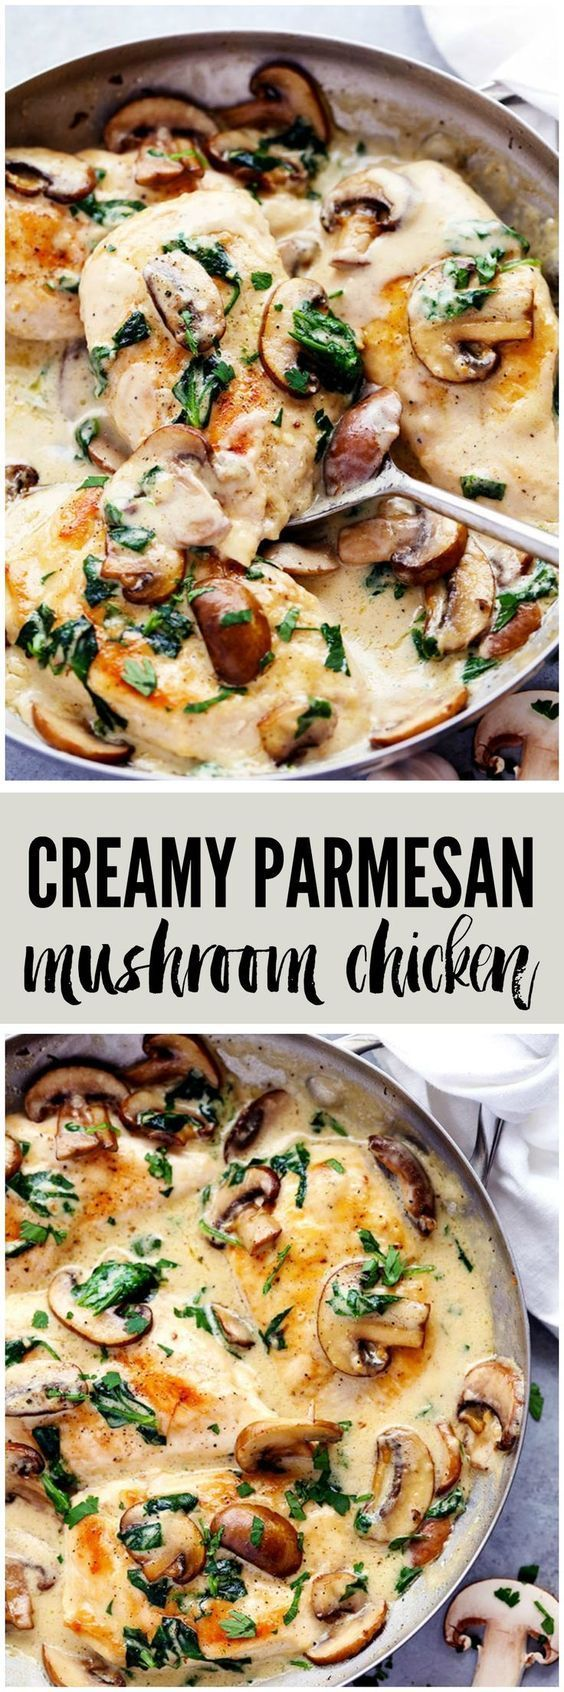 Creamy Parmesan Garlic Mushroom Chicken - can do sans chicken and add the mushrooms if you like. Works for Veggie and meat lovers!